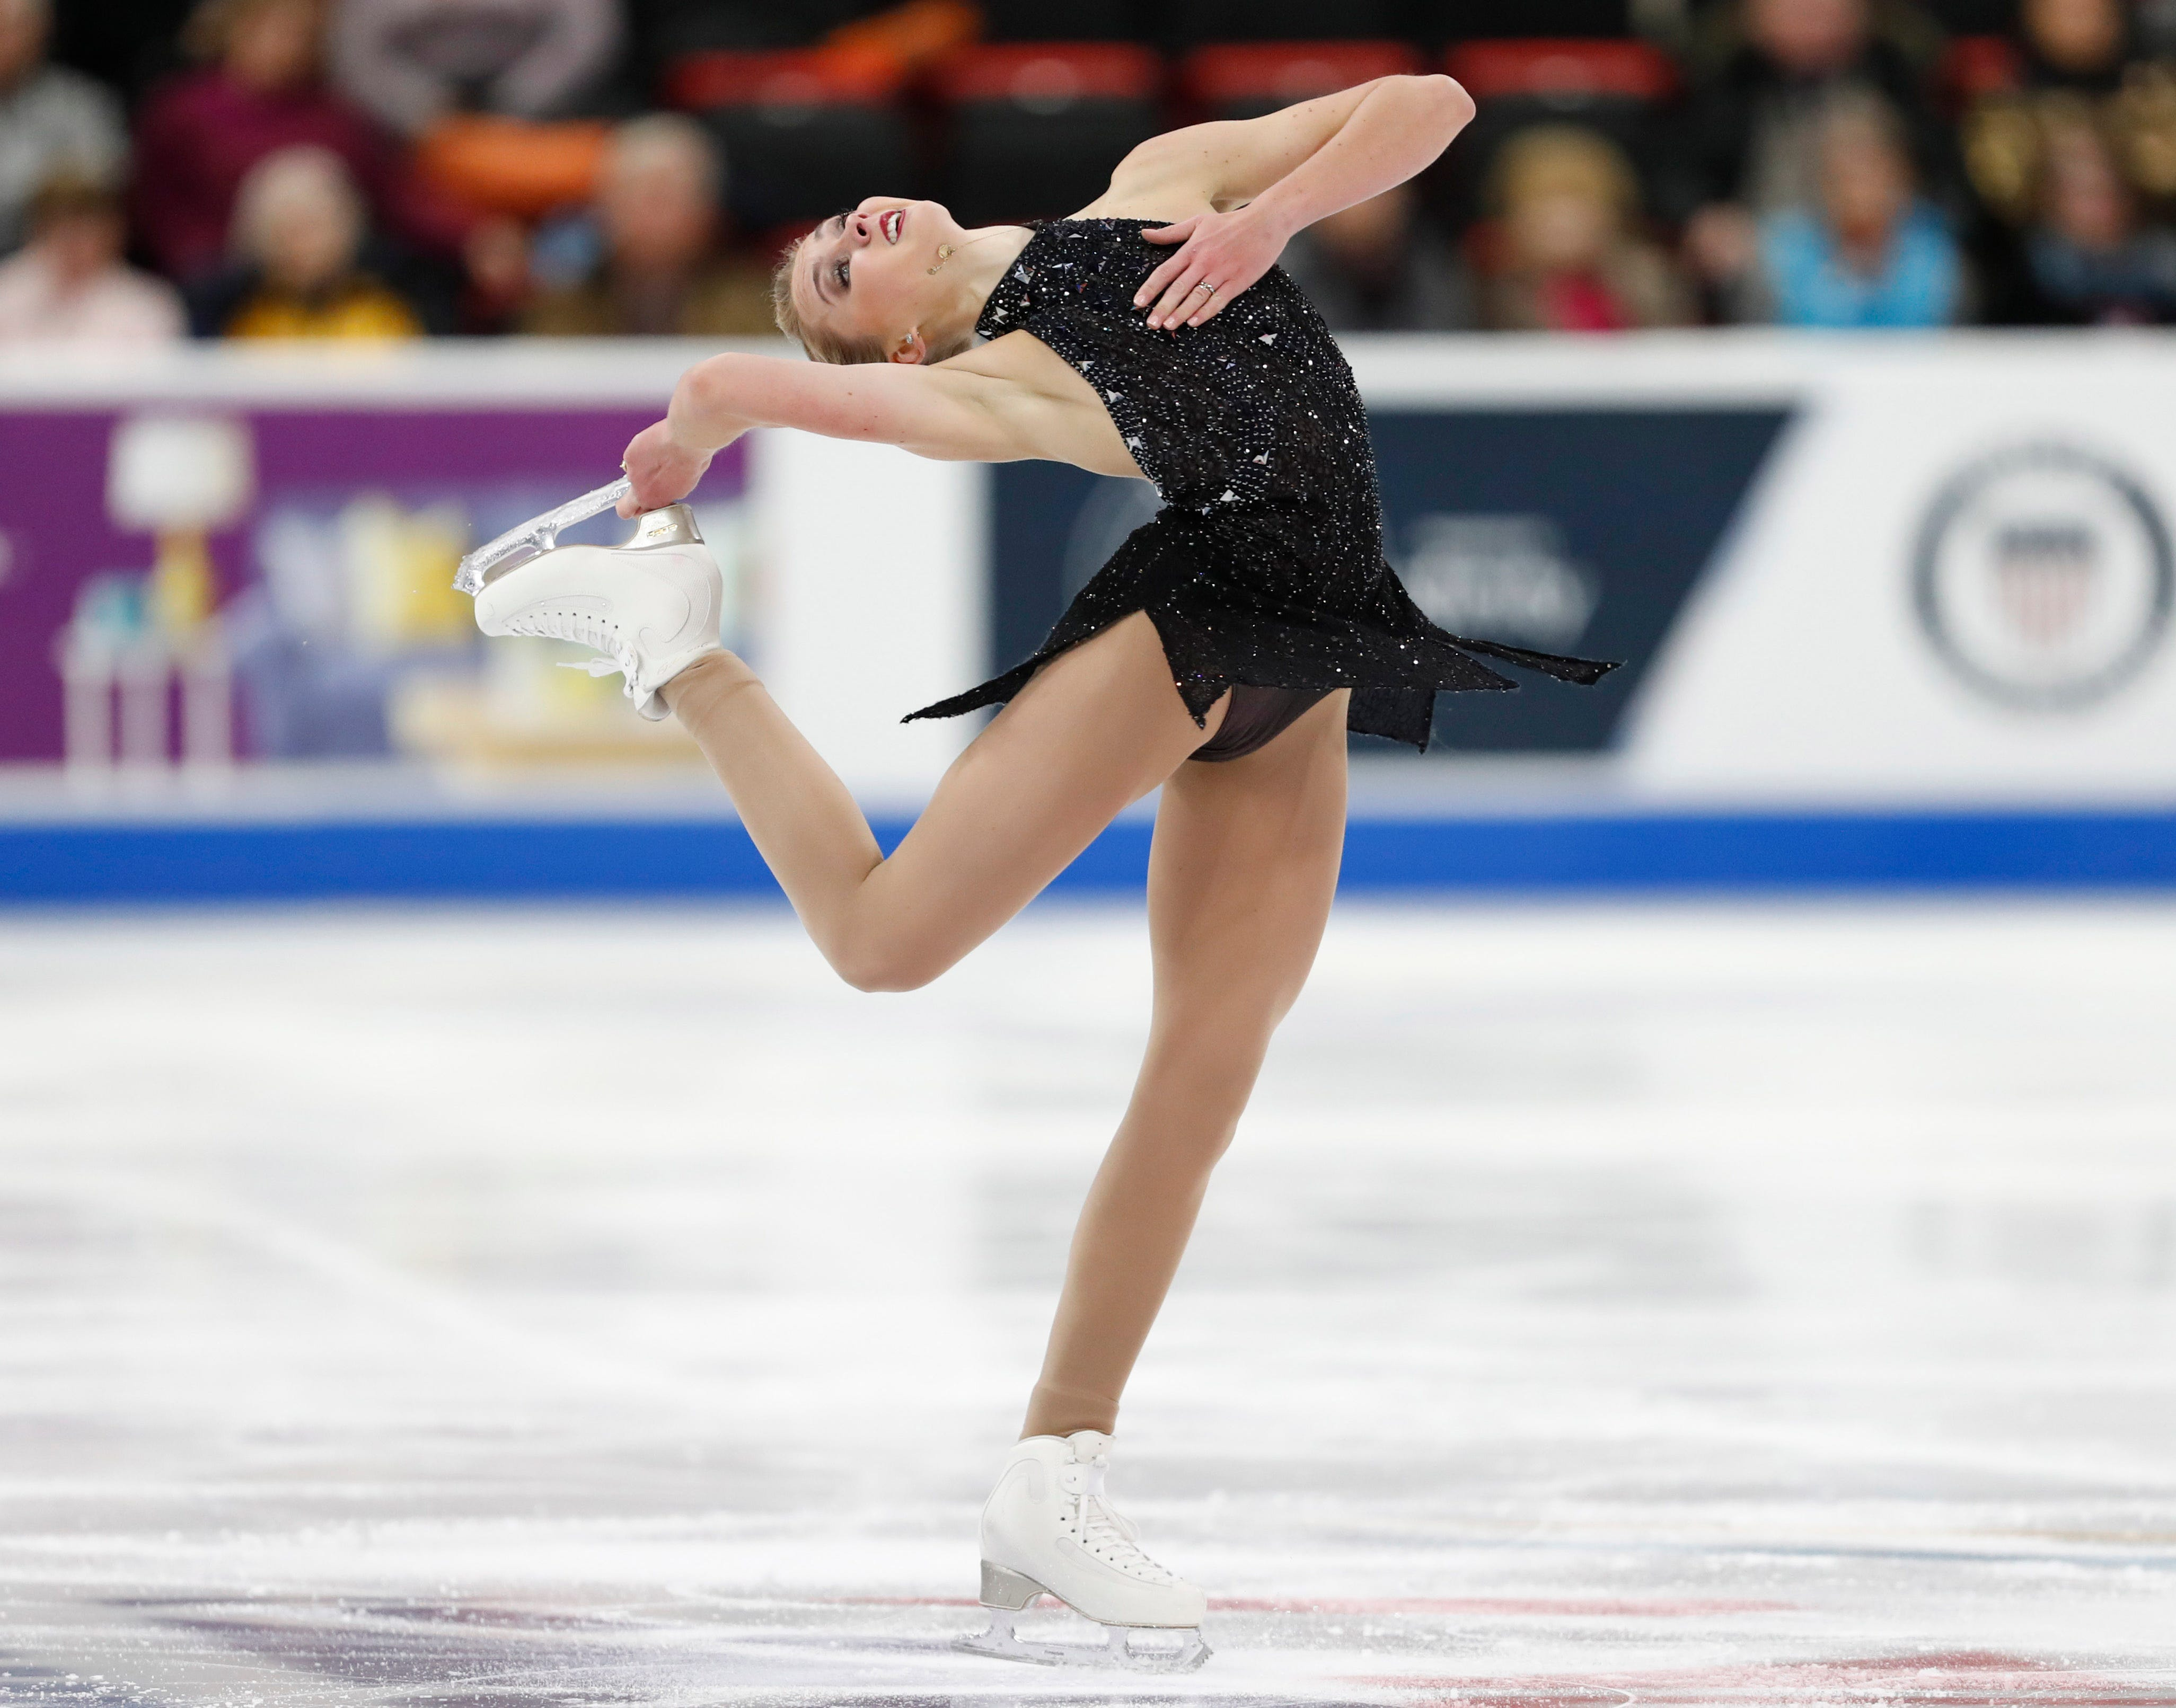 Heidi Munger made her second career appearance at the U.S. figure skating championships.